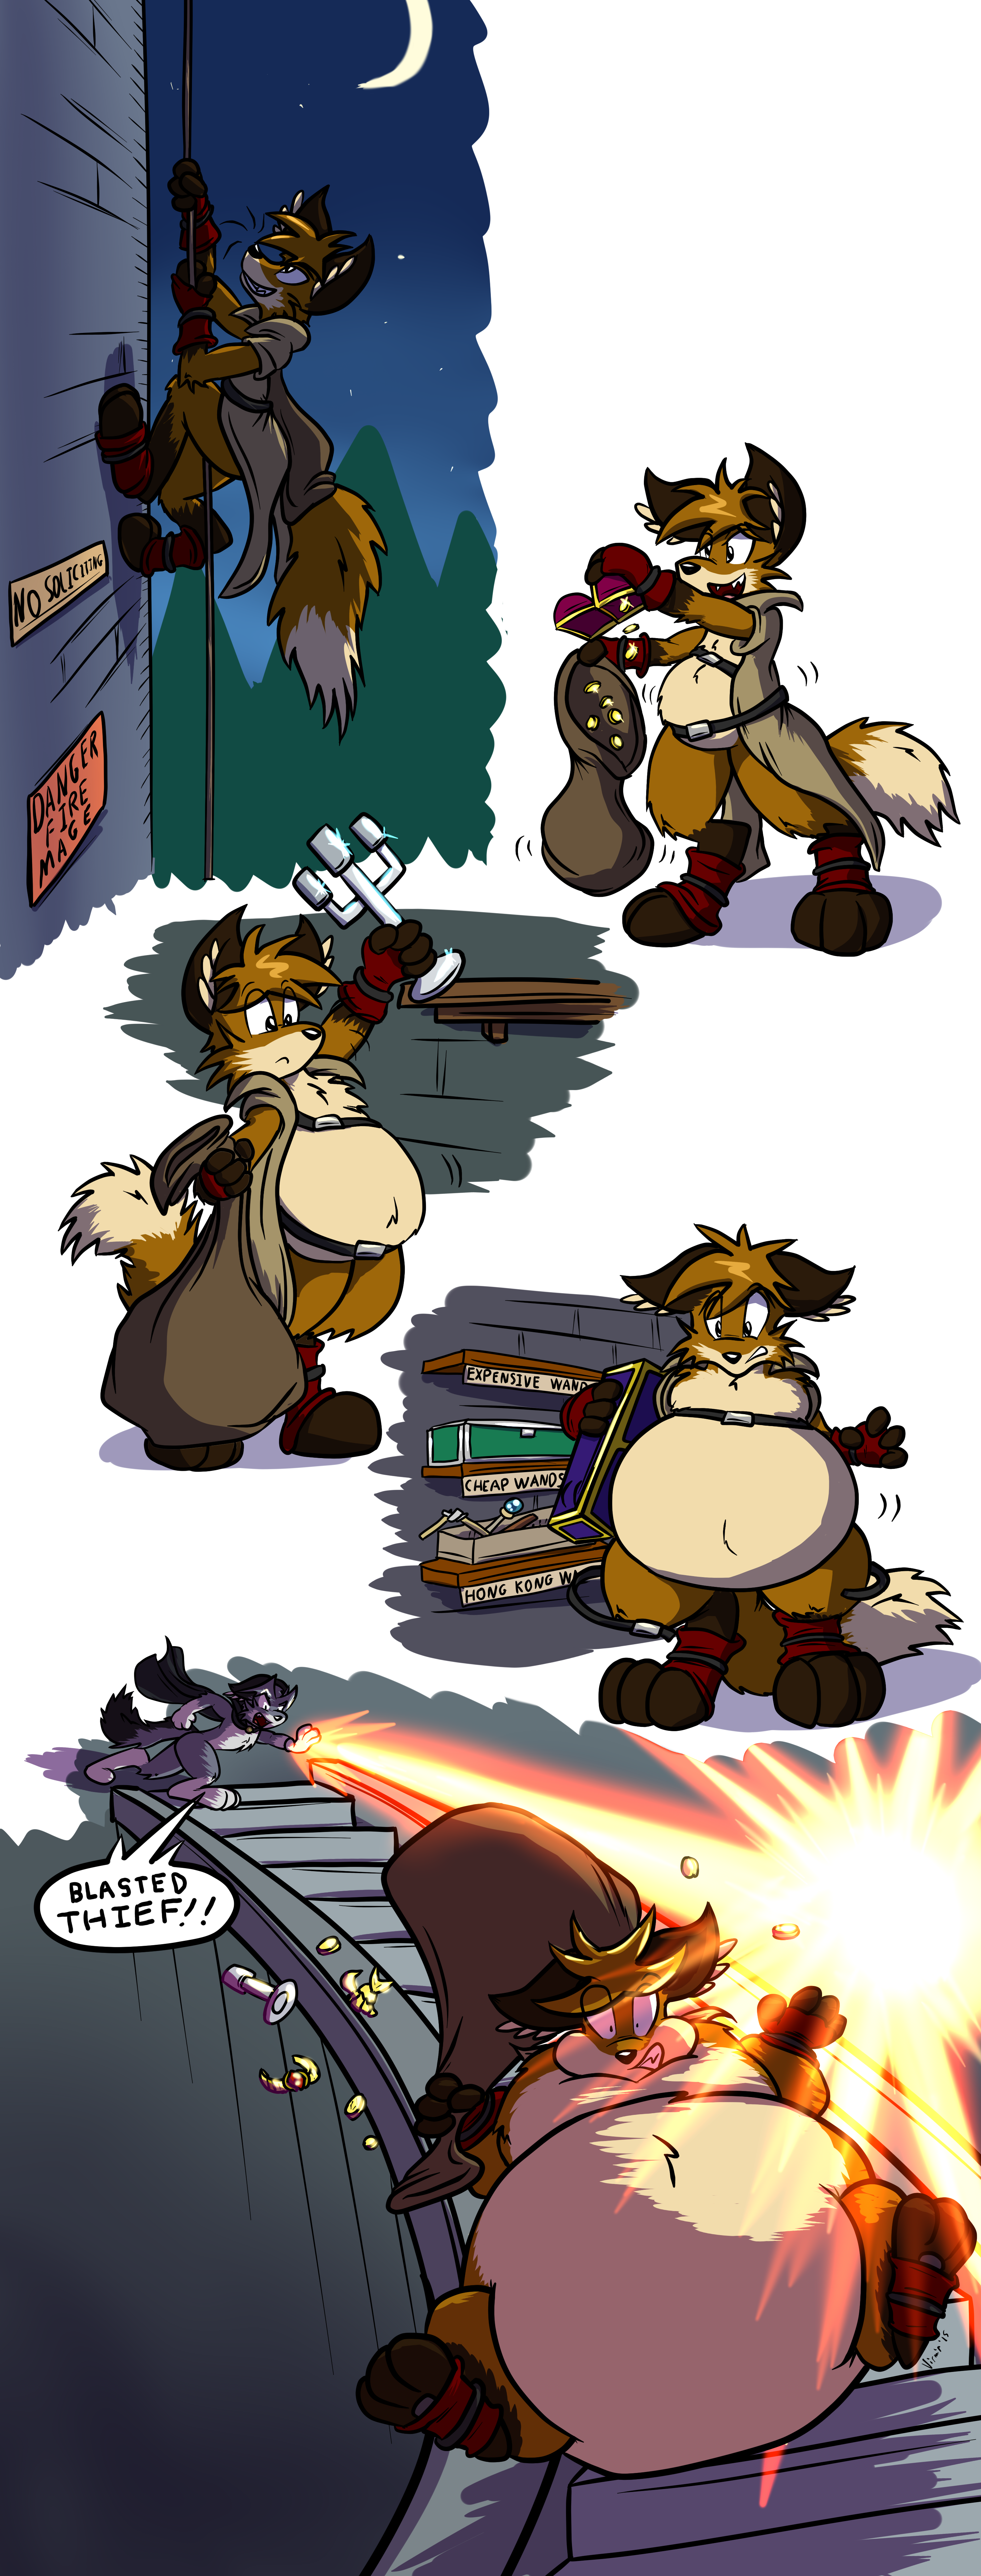 Treasure clipart heap. Art by virmir chubby